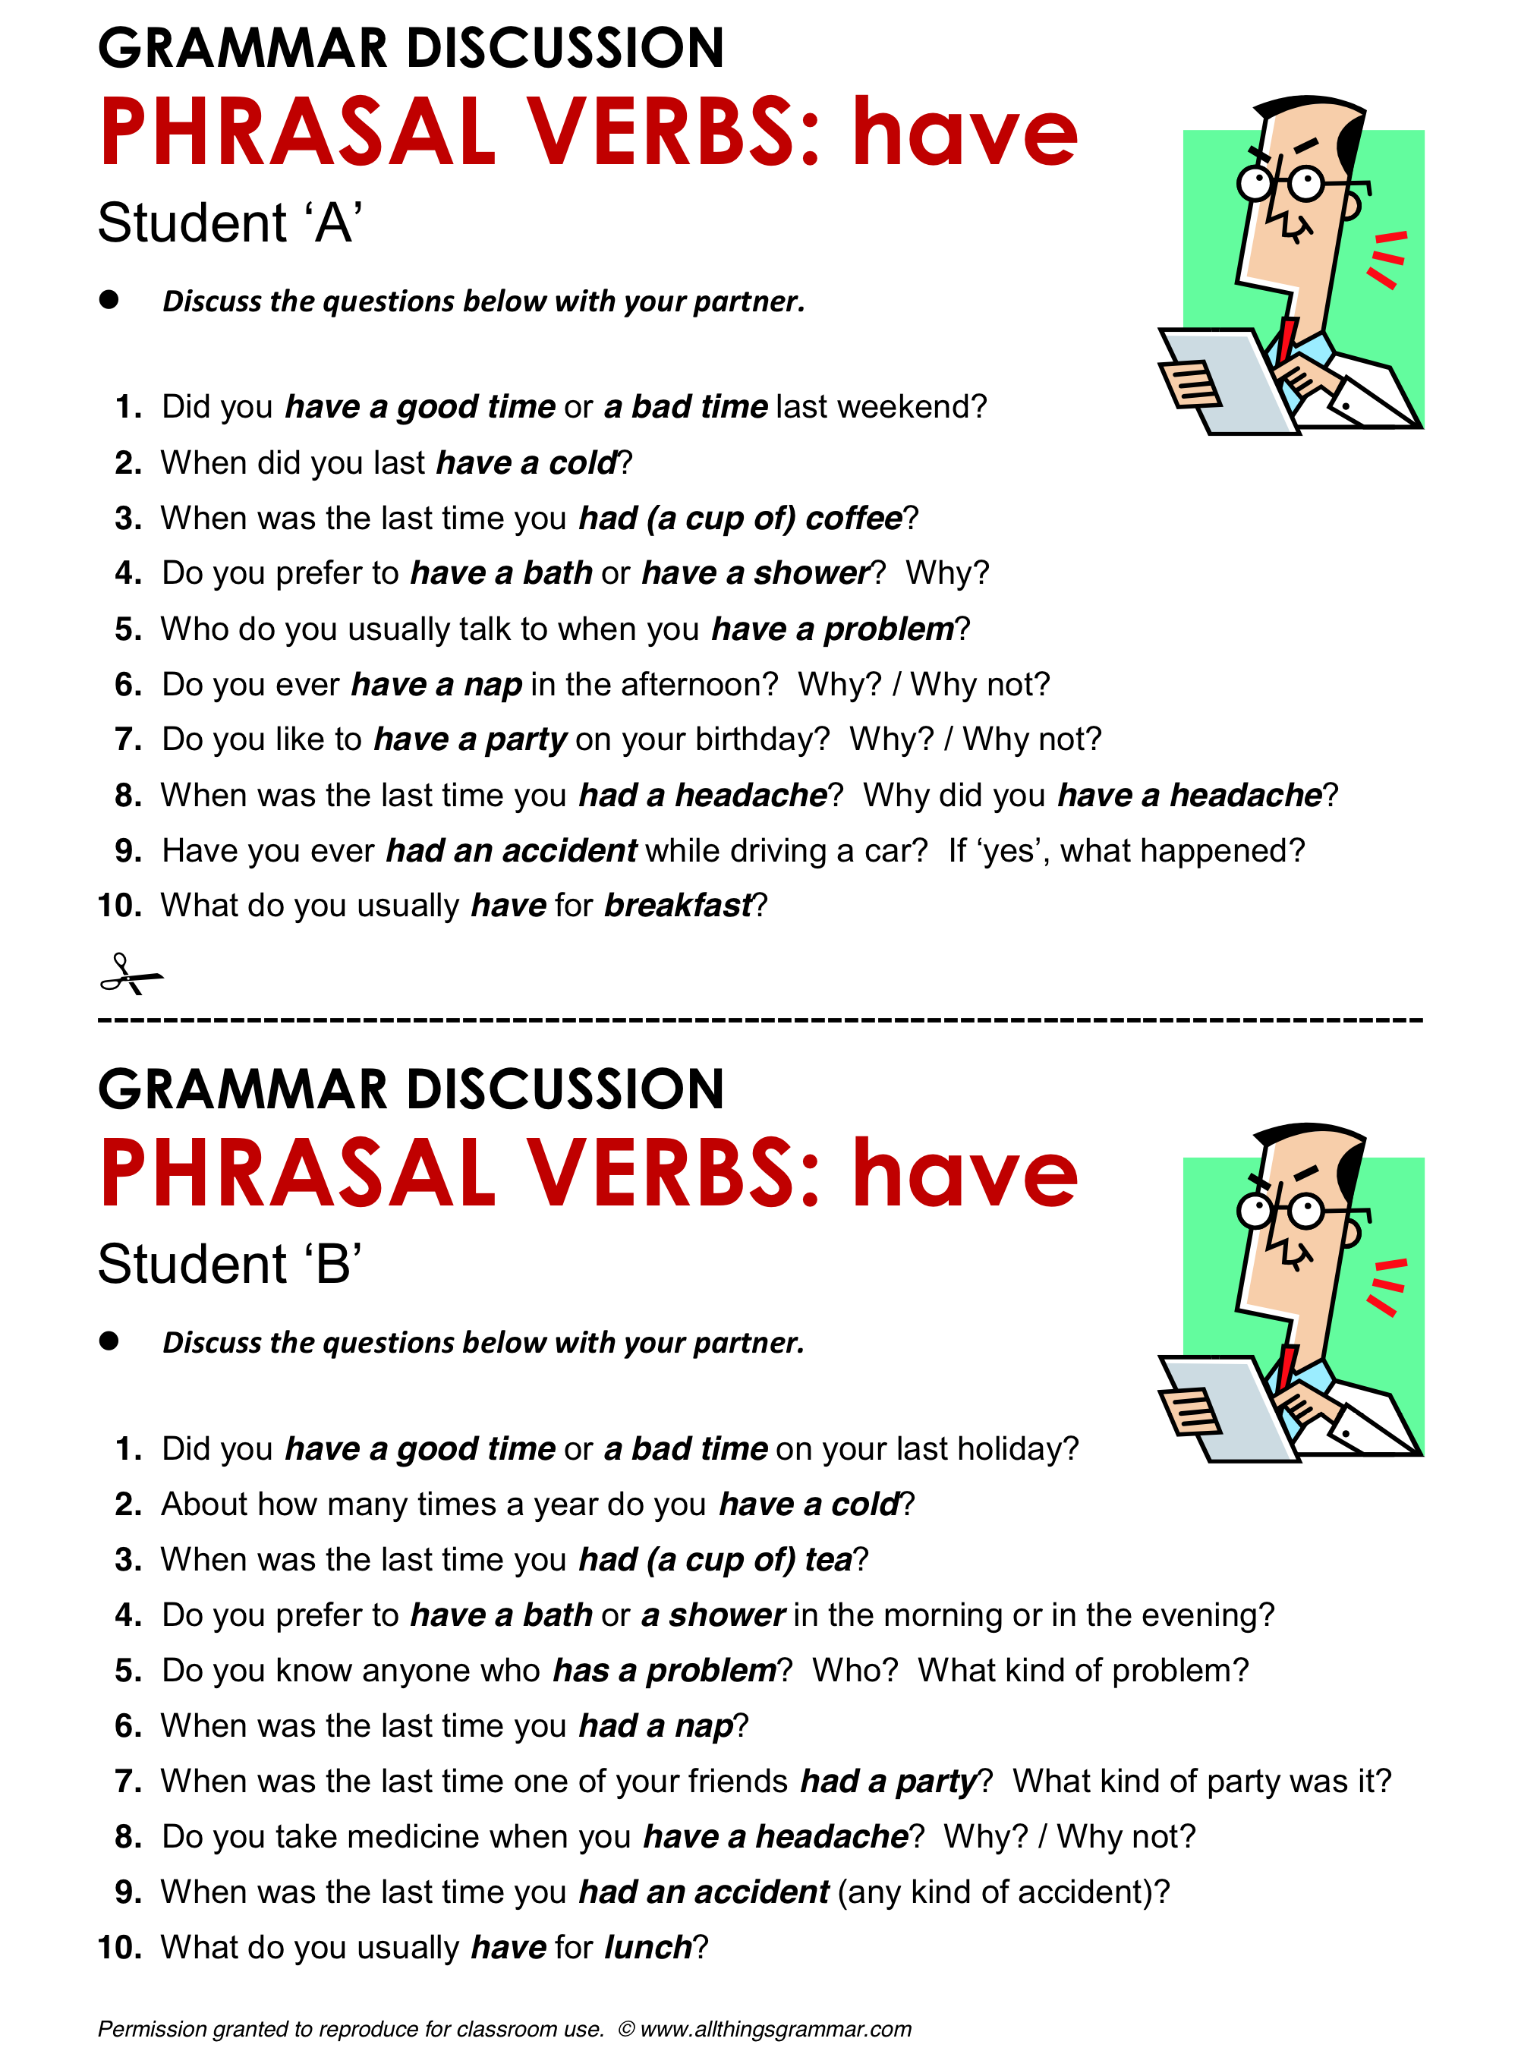 English Grammar Phrasal Verbs With Have